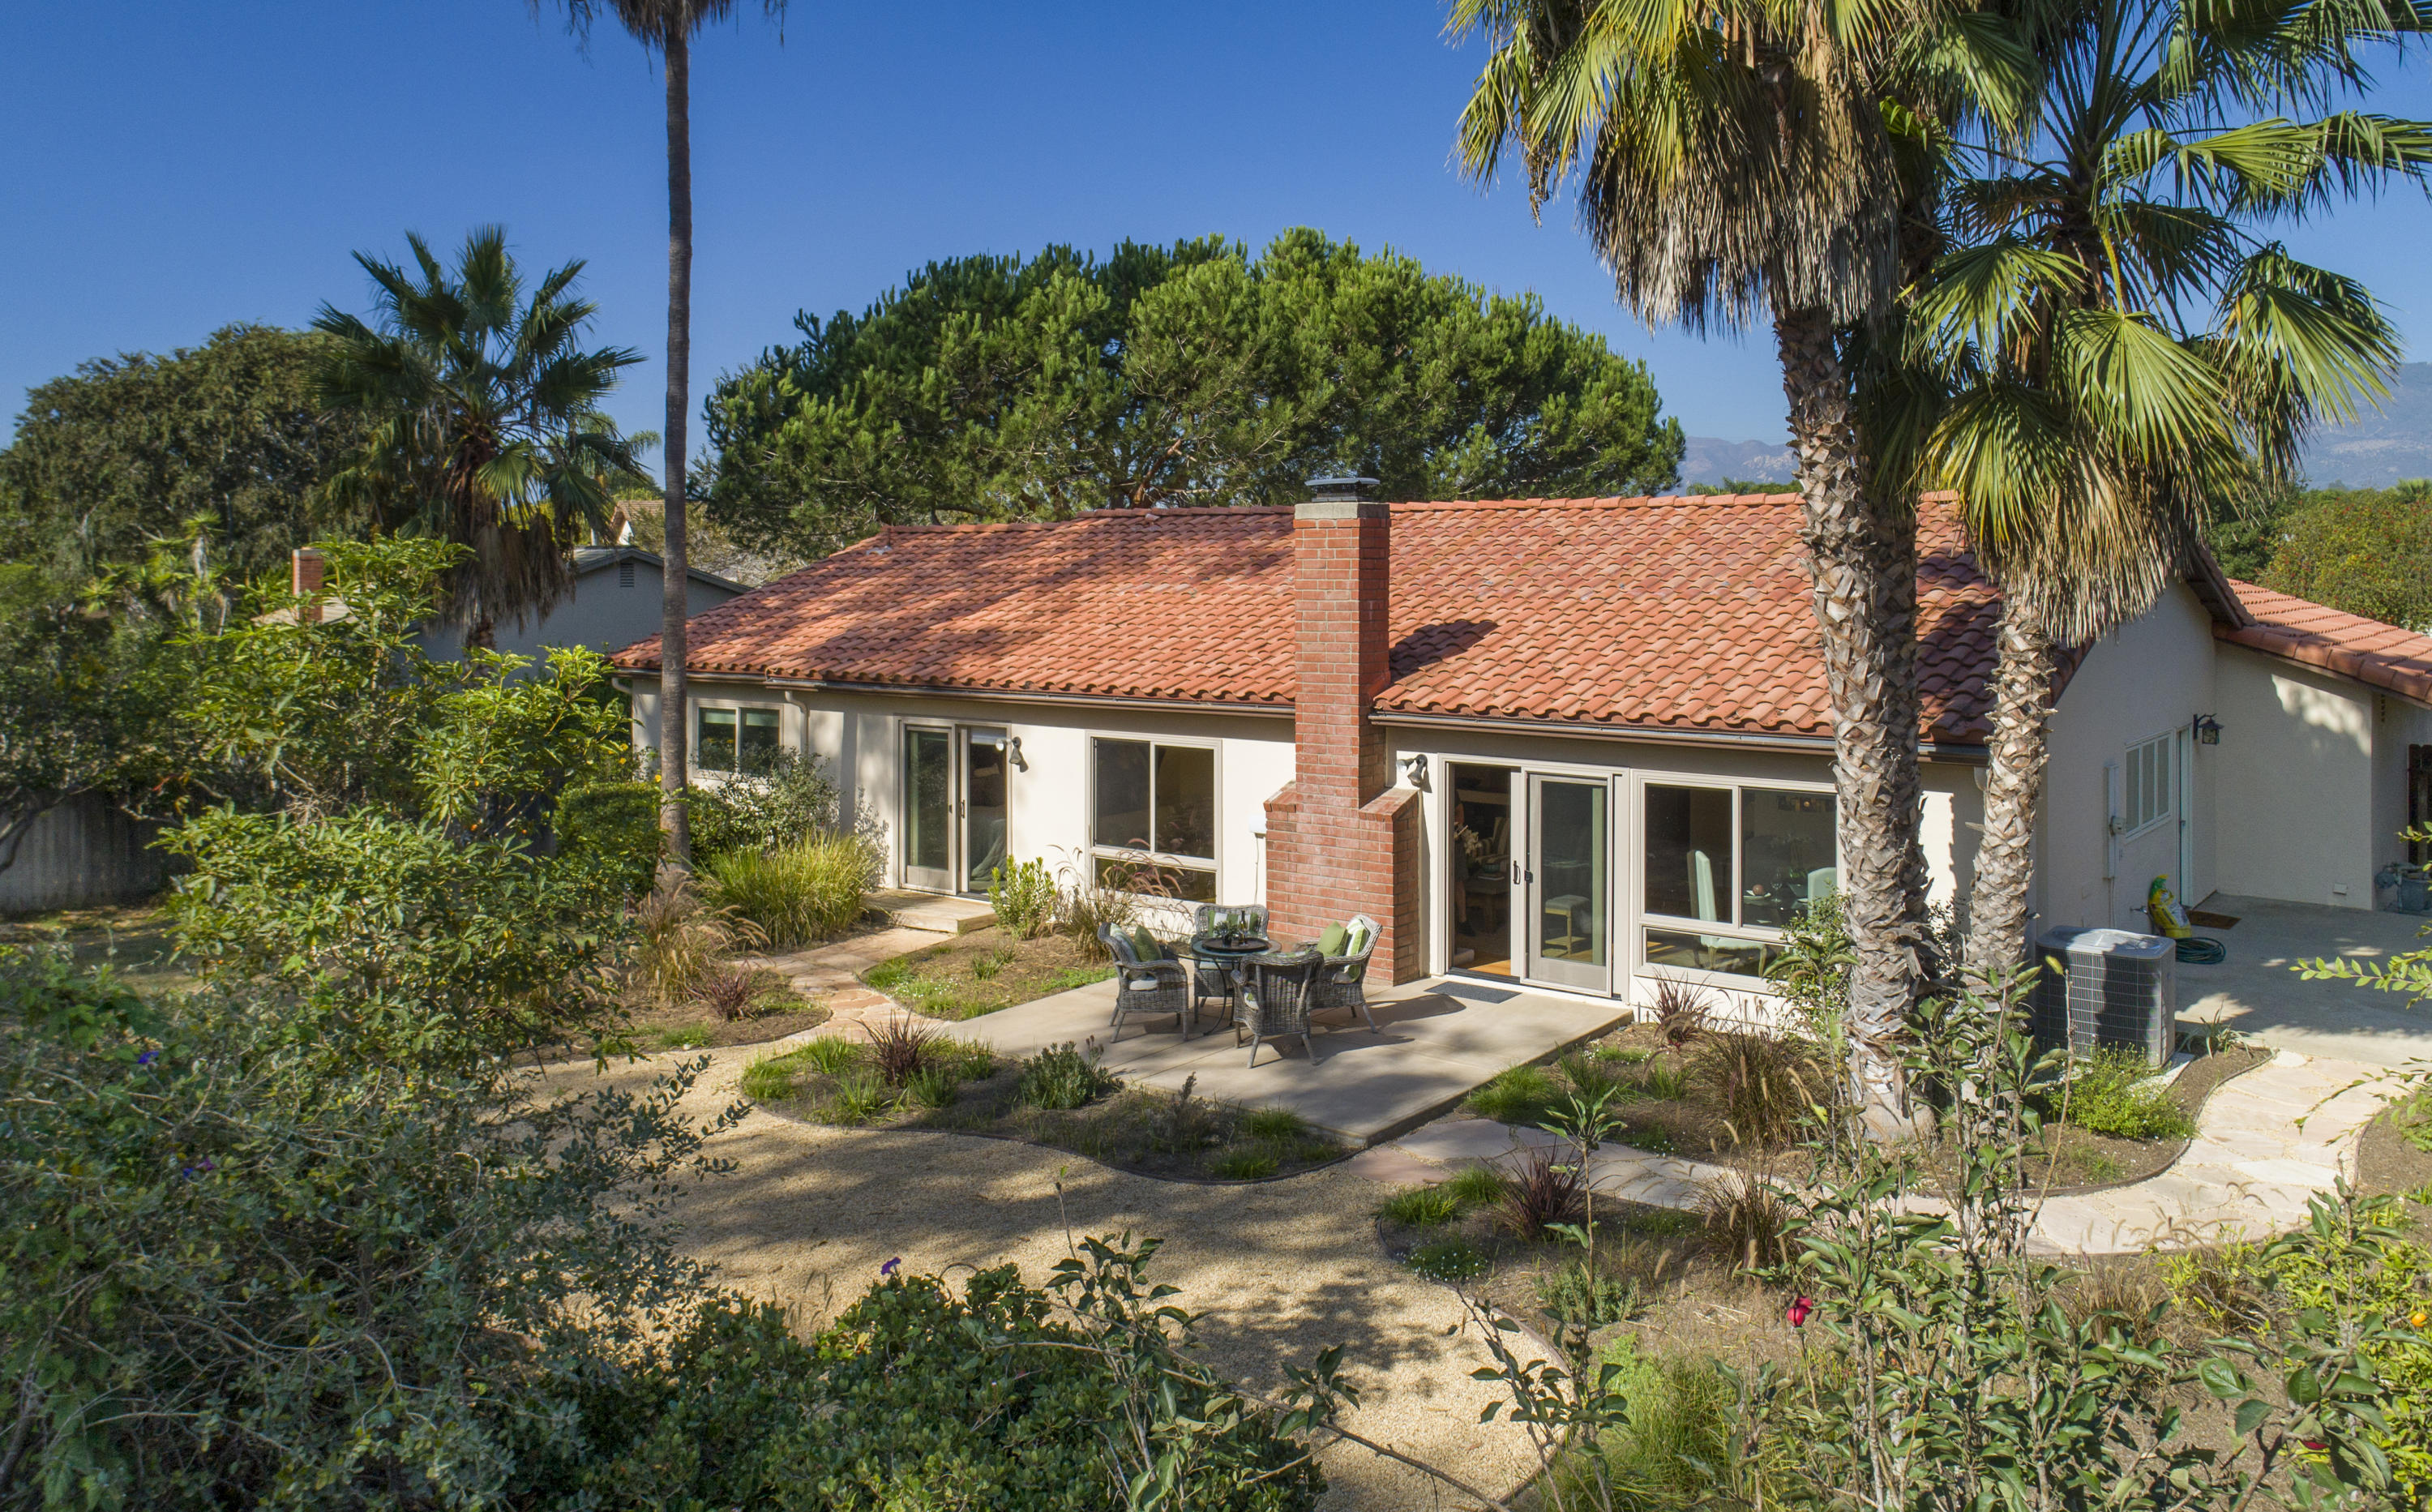 Property photo for 4641 Camino Del Robles Santa Barbara, California 93110 - 18-3094